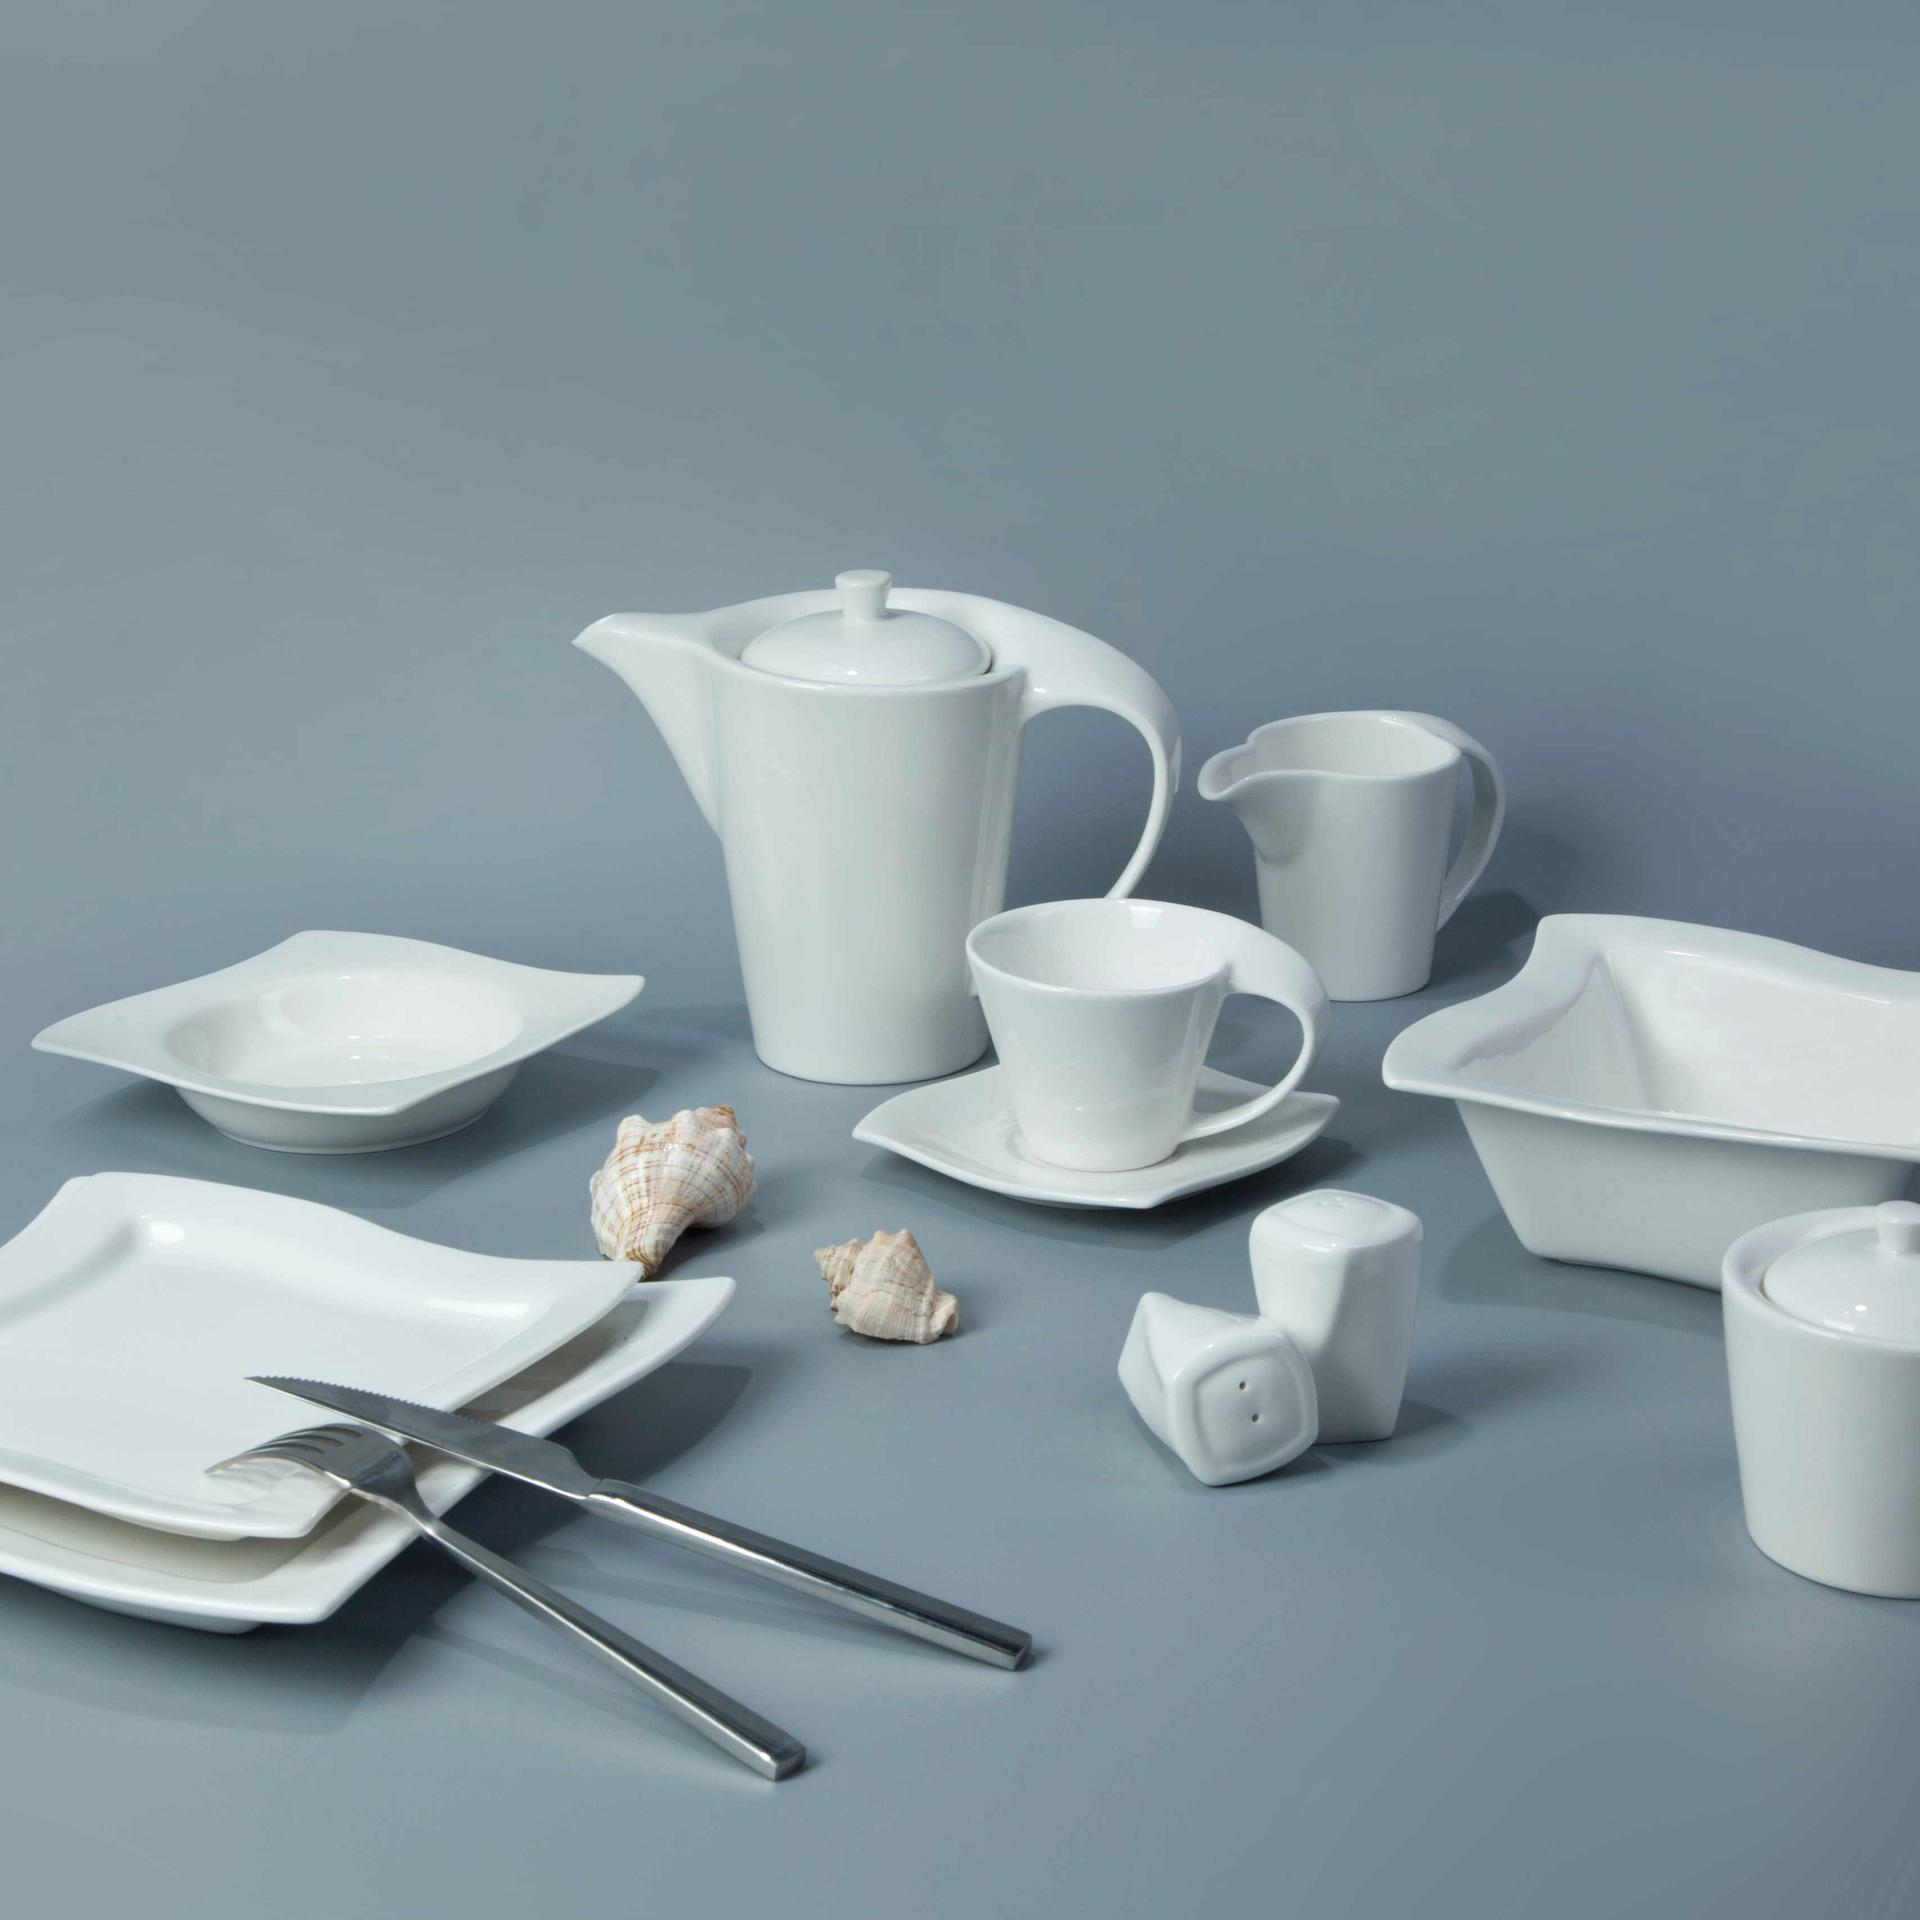 Contemporary White Porcelain Dinnerware Restaurant - TW16